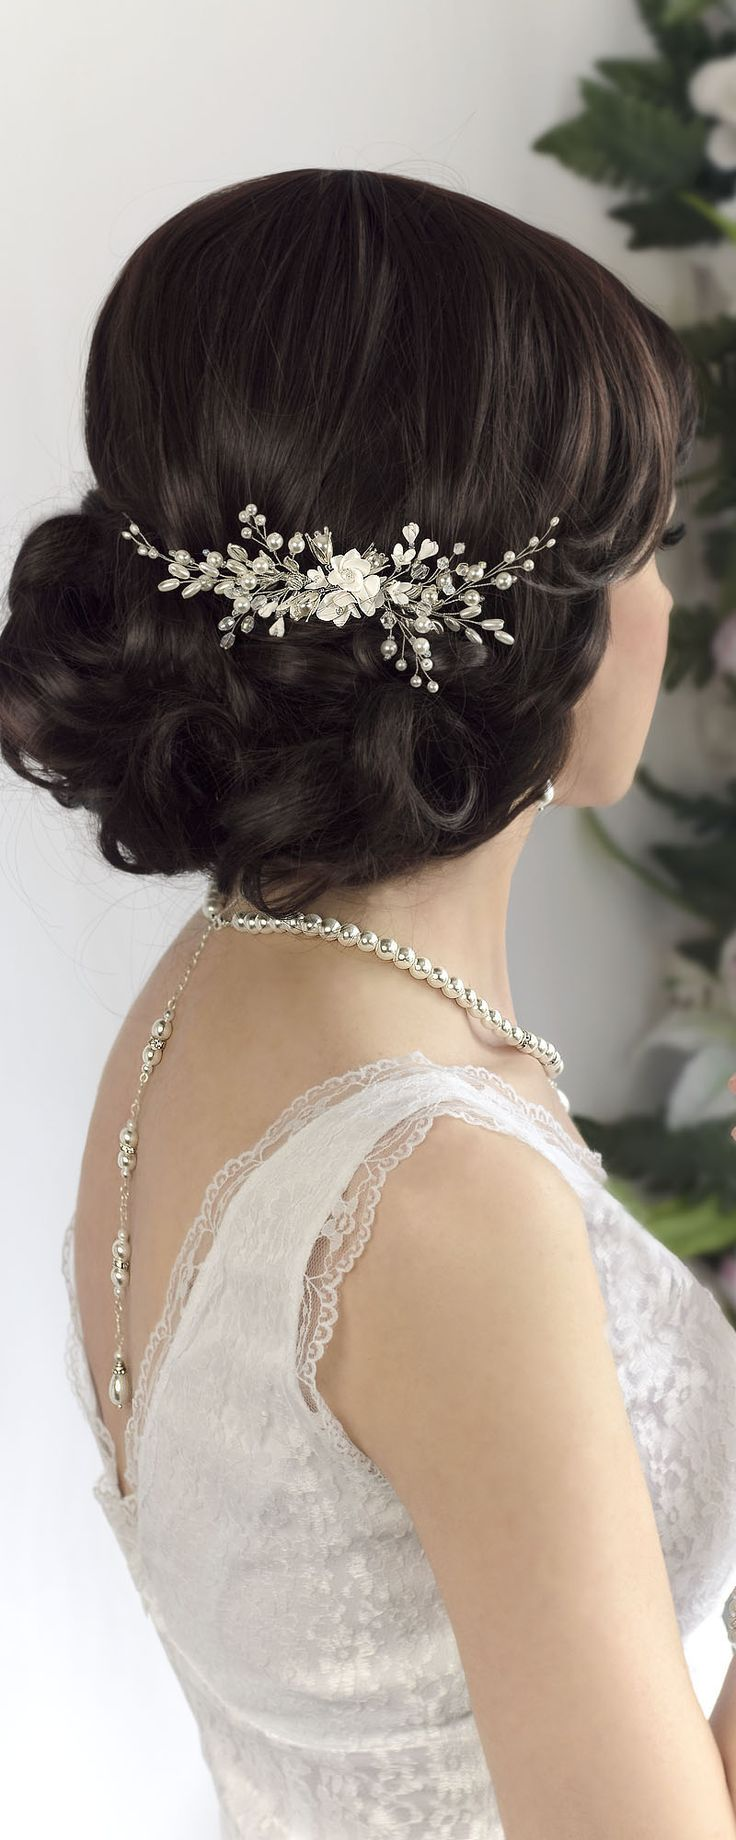 Bridal hair comb, wedding headpiece, bridal hair accessories. Handmade wedding pearl comb for hair is now in the trend. By TopGracia.